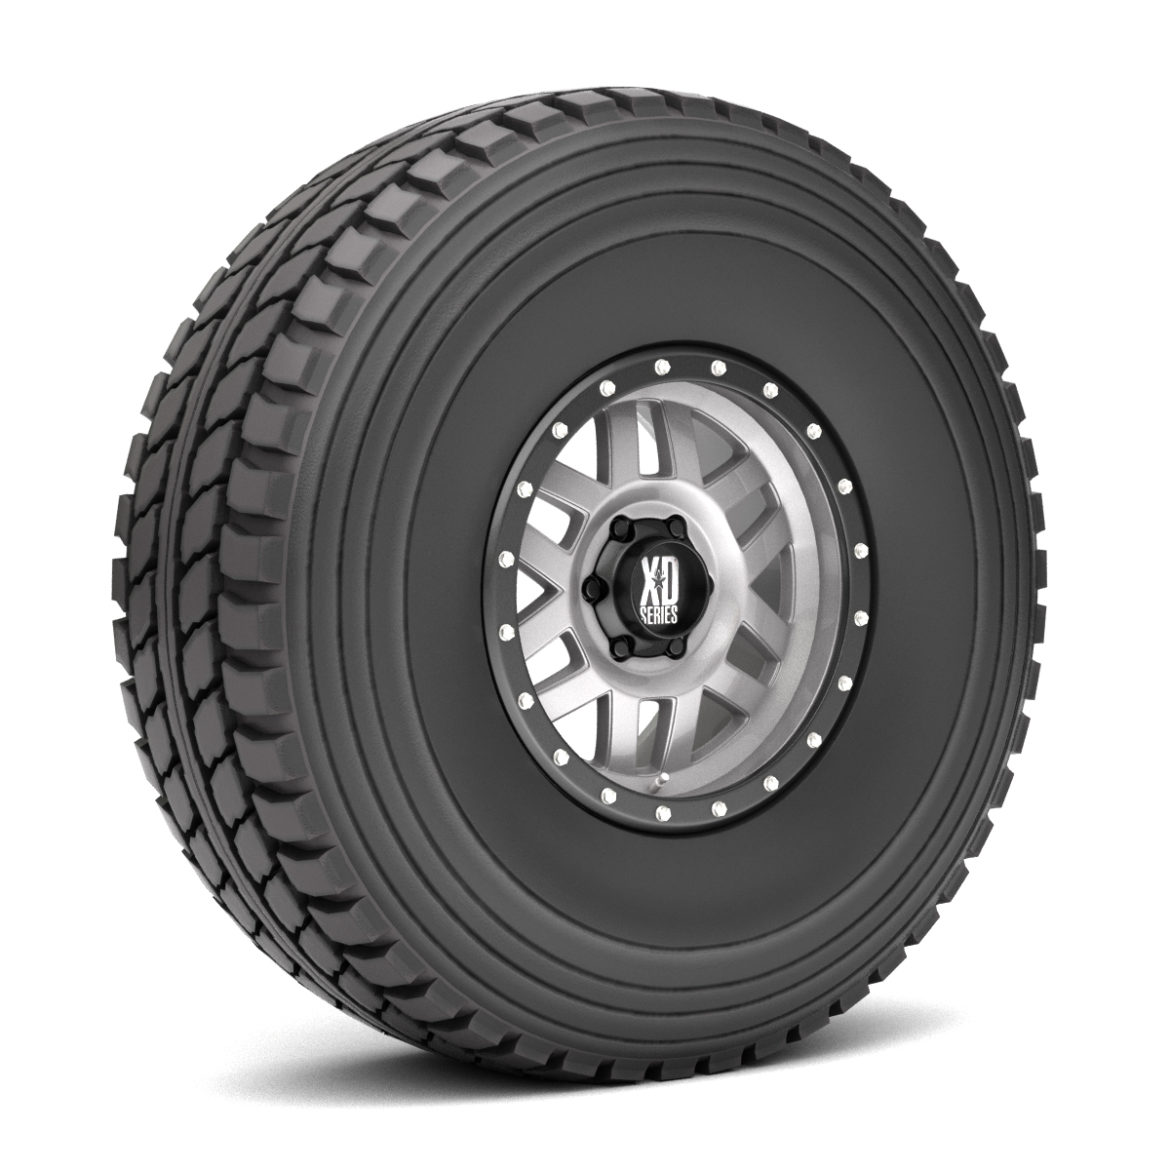 off road wheel and tire 9 3d model 3ds max fbx obj 295111